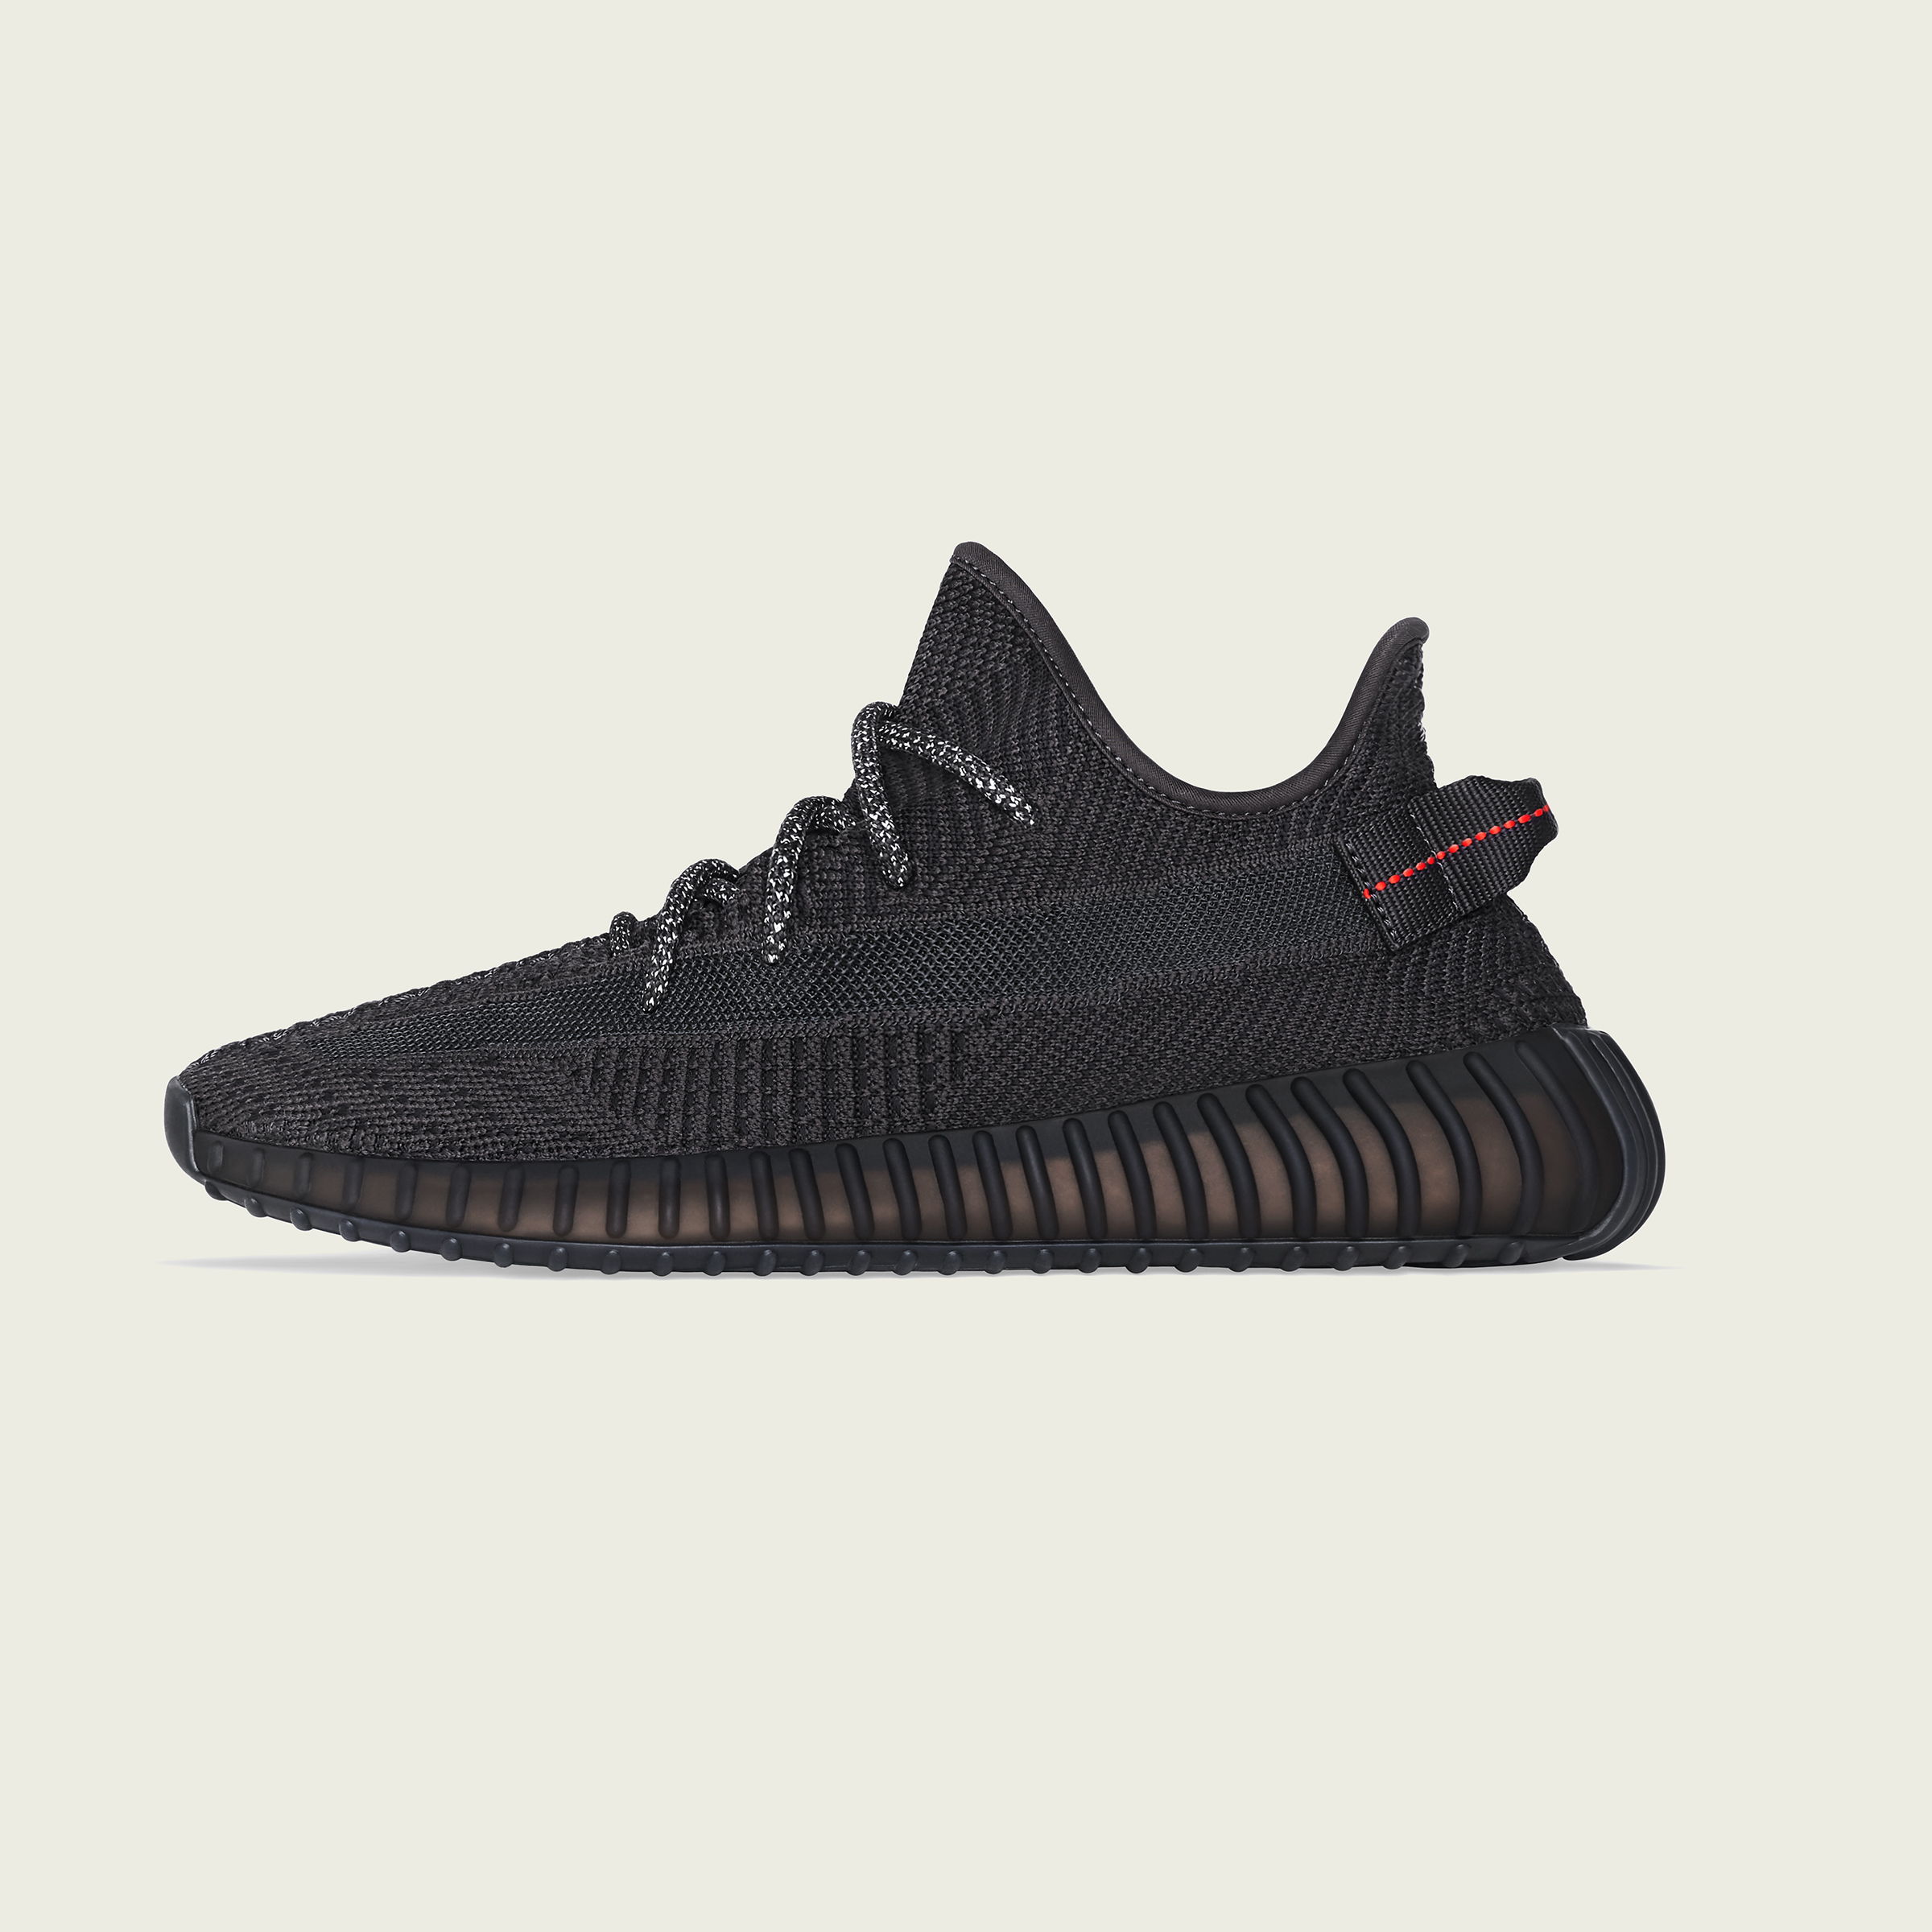 adidas + KANYE WEST announce the YEEZY BOOST 350 V2 Black